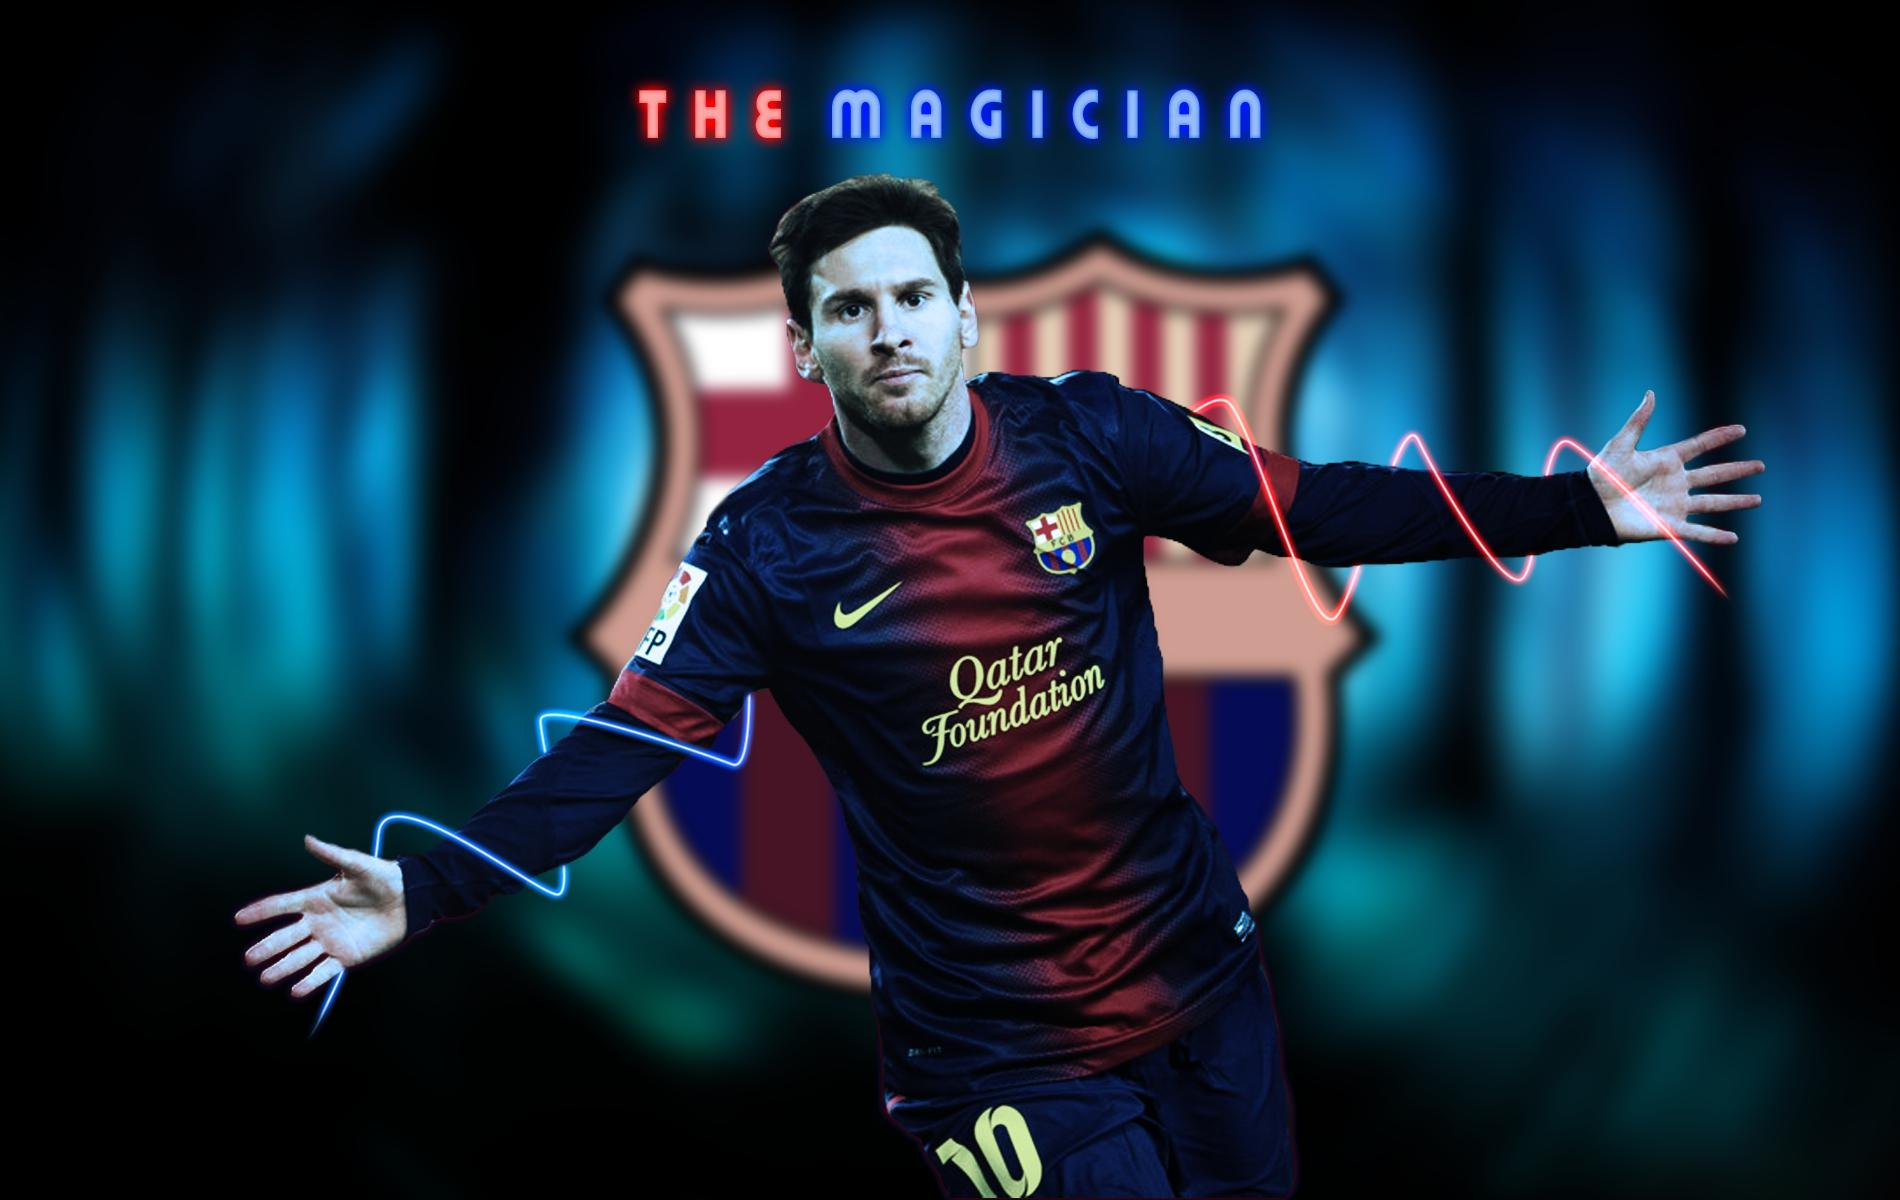 Lionel Messi Football Wallpaper 1900x1200